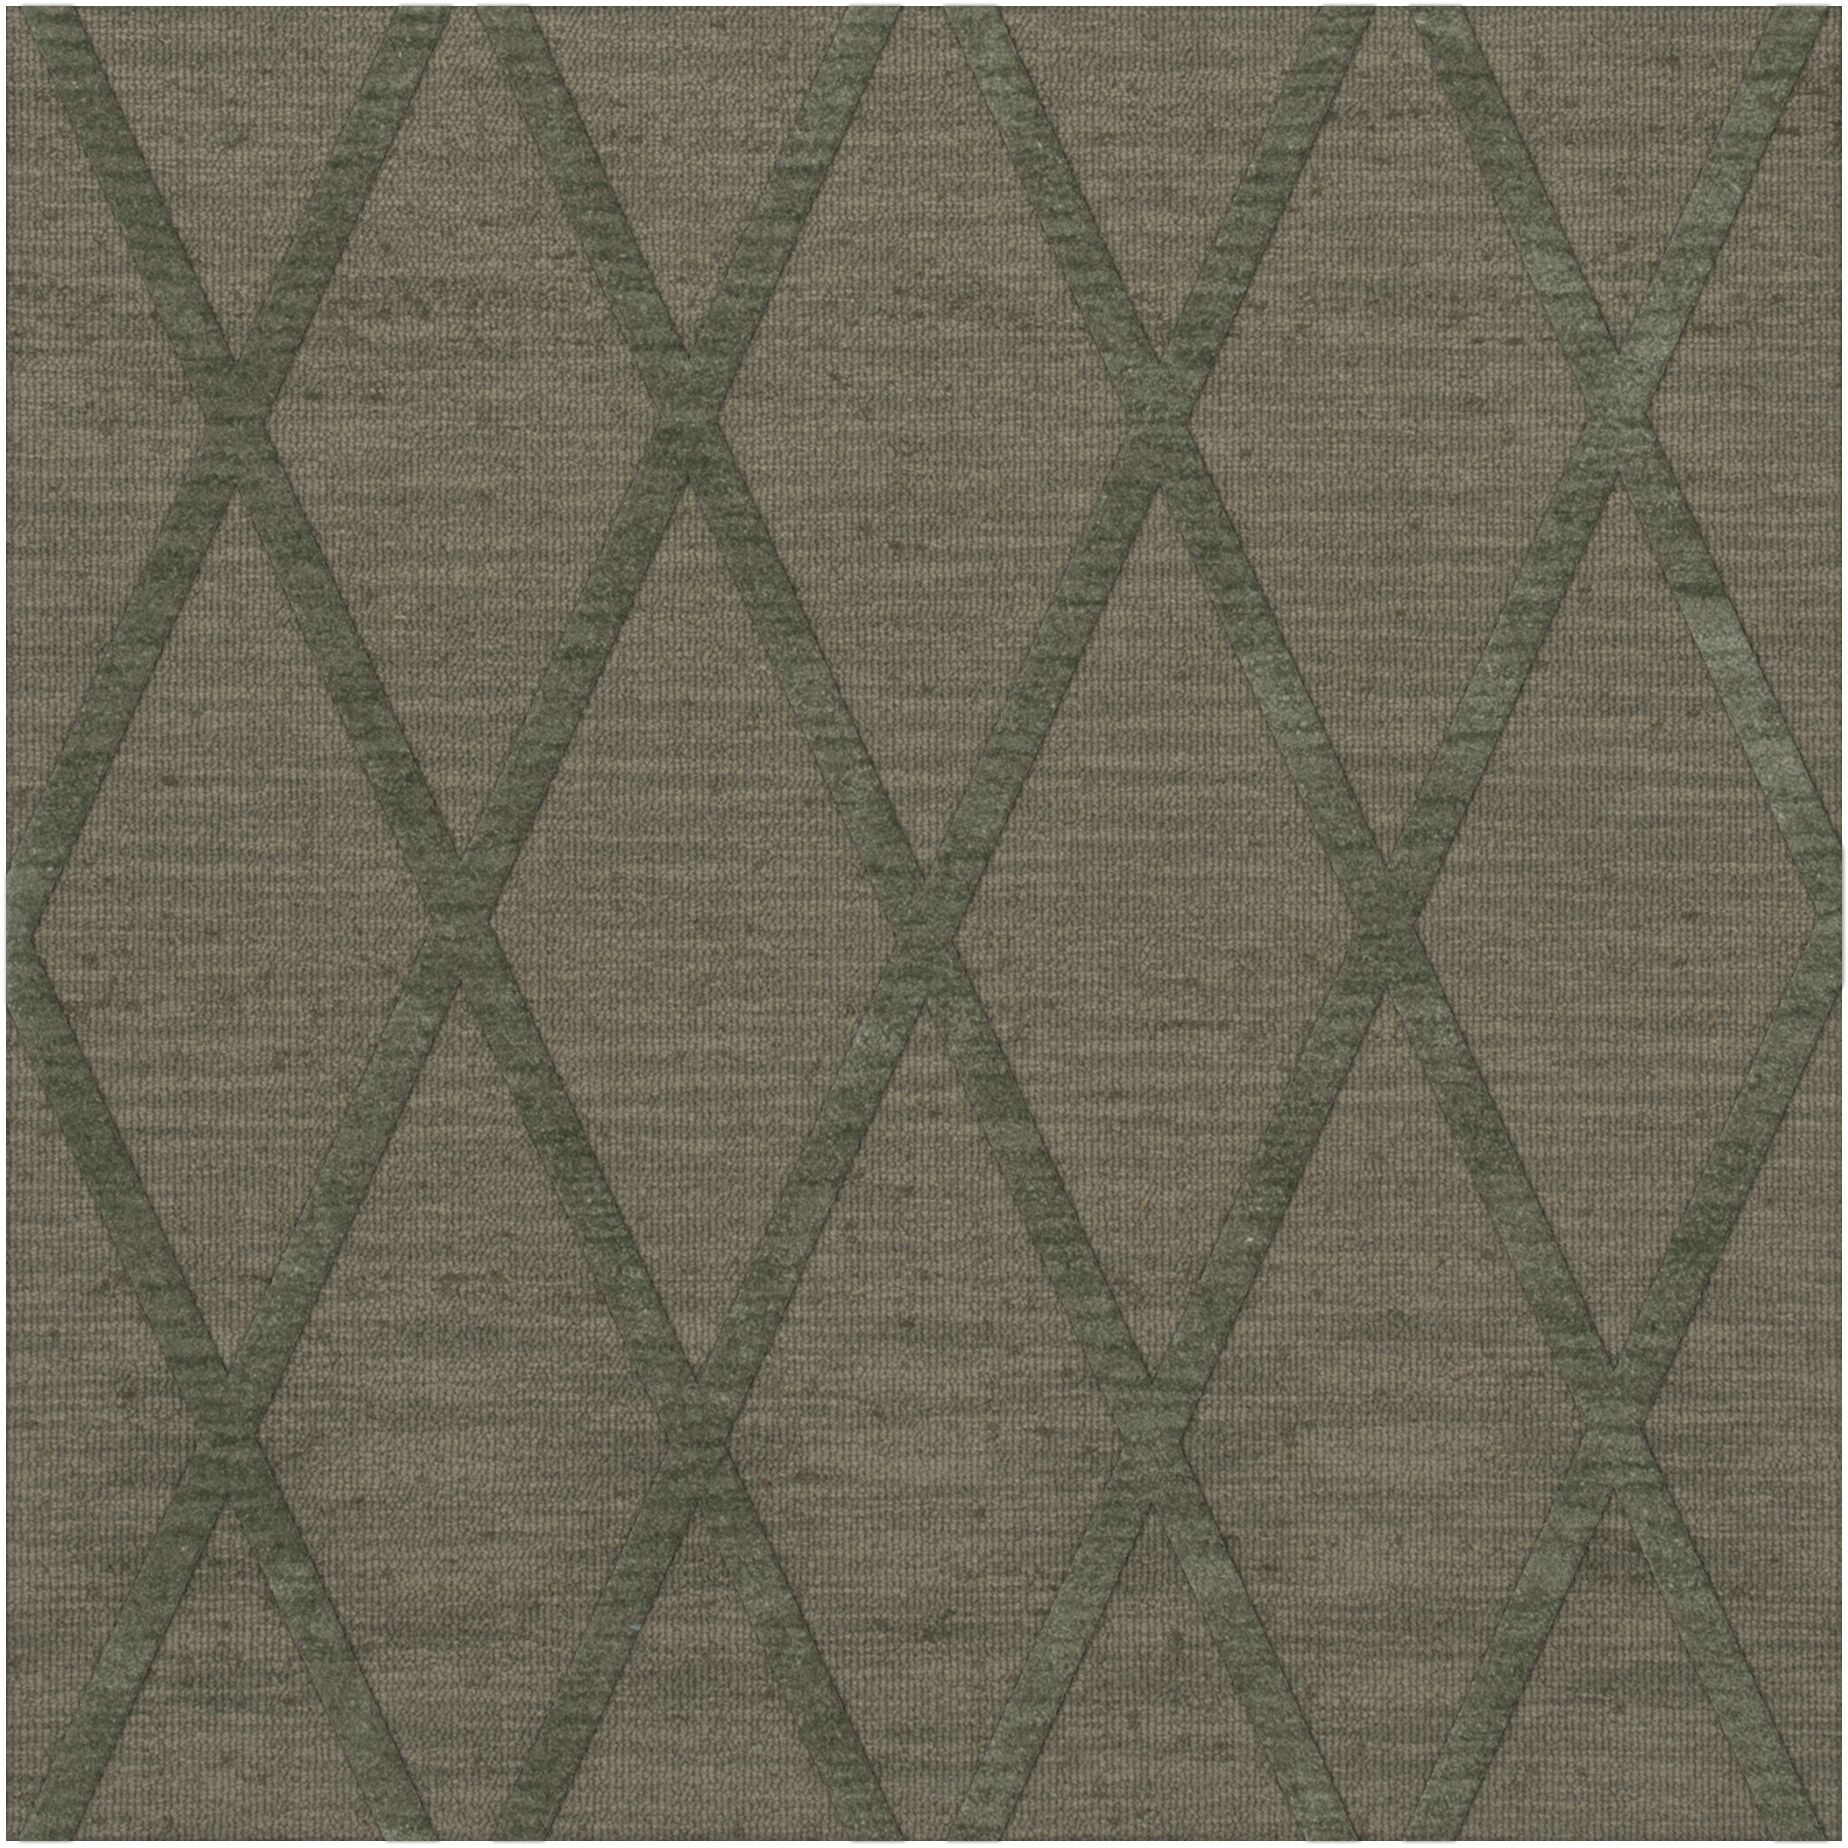 Dover Tufted Wool Aloe Area Rug Rug Size: Square 8'